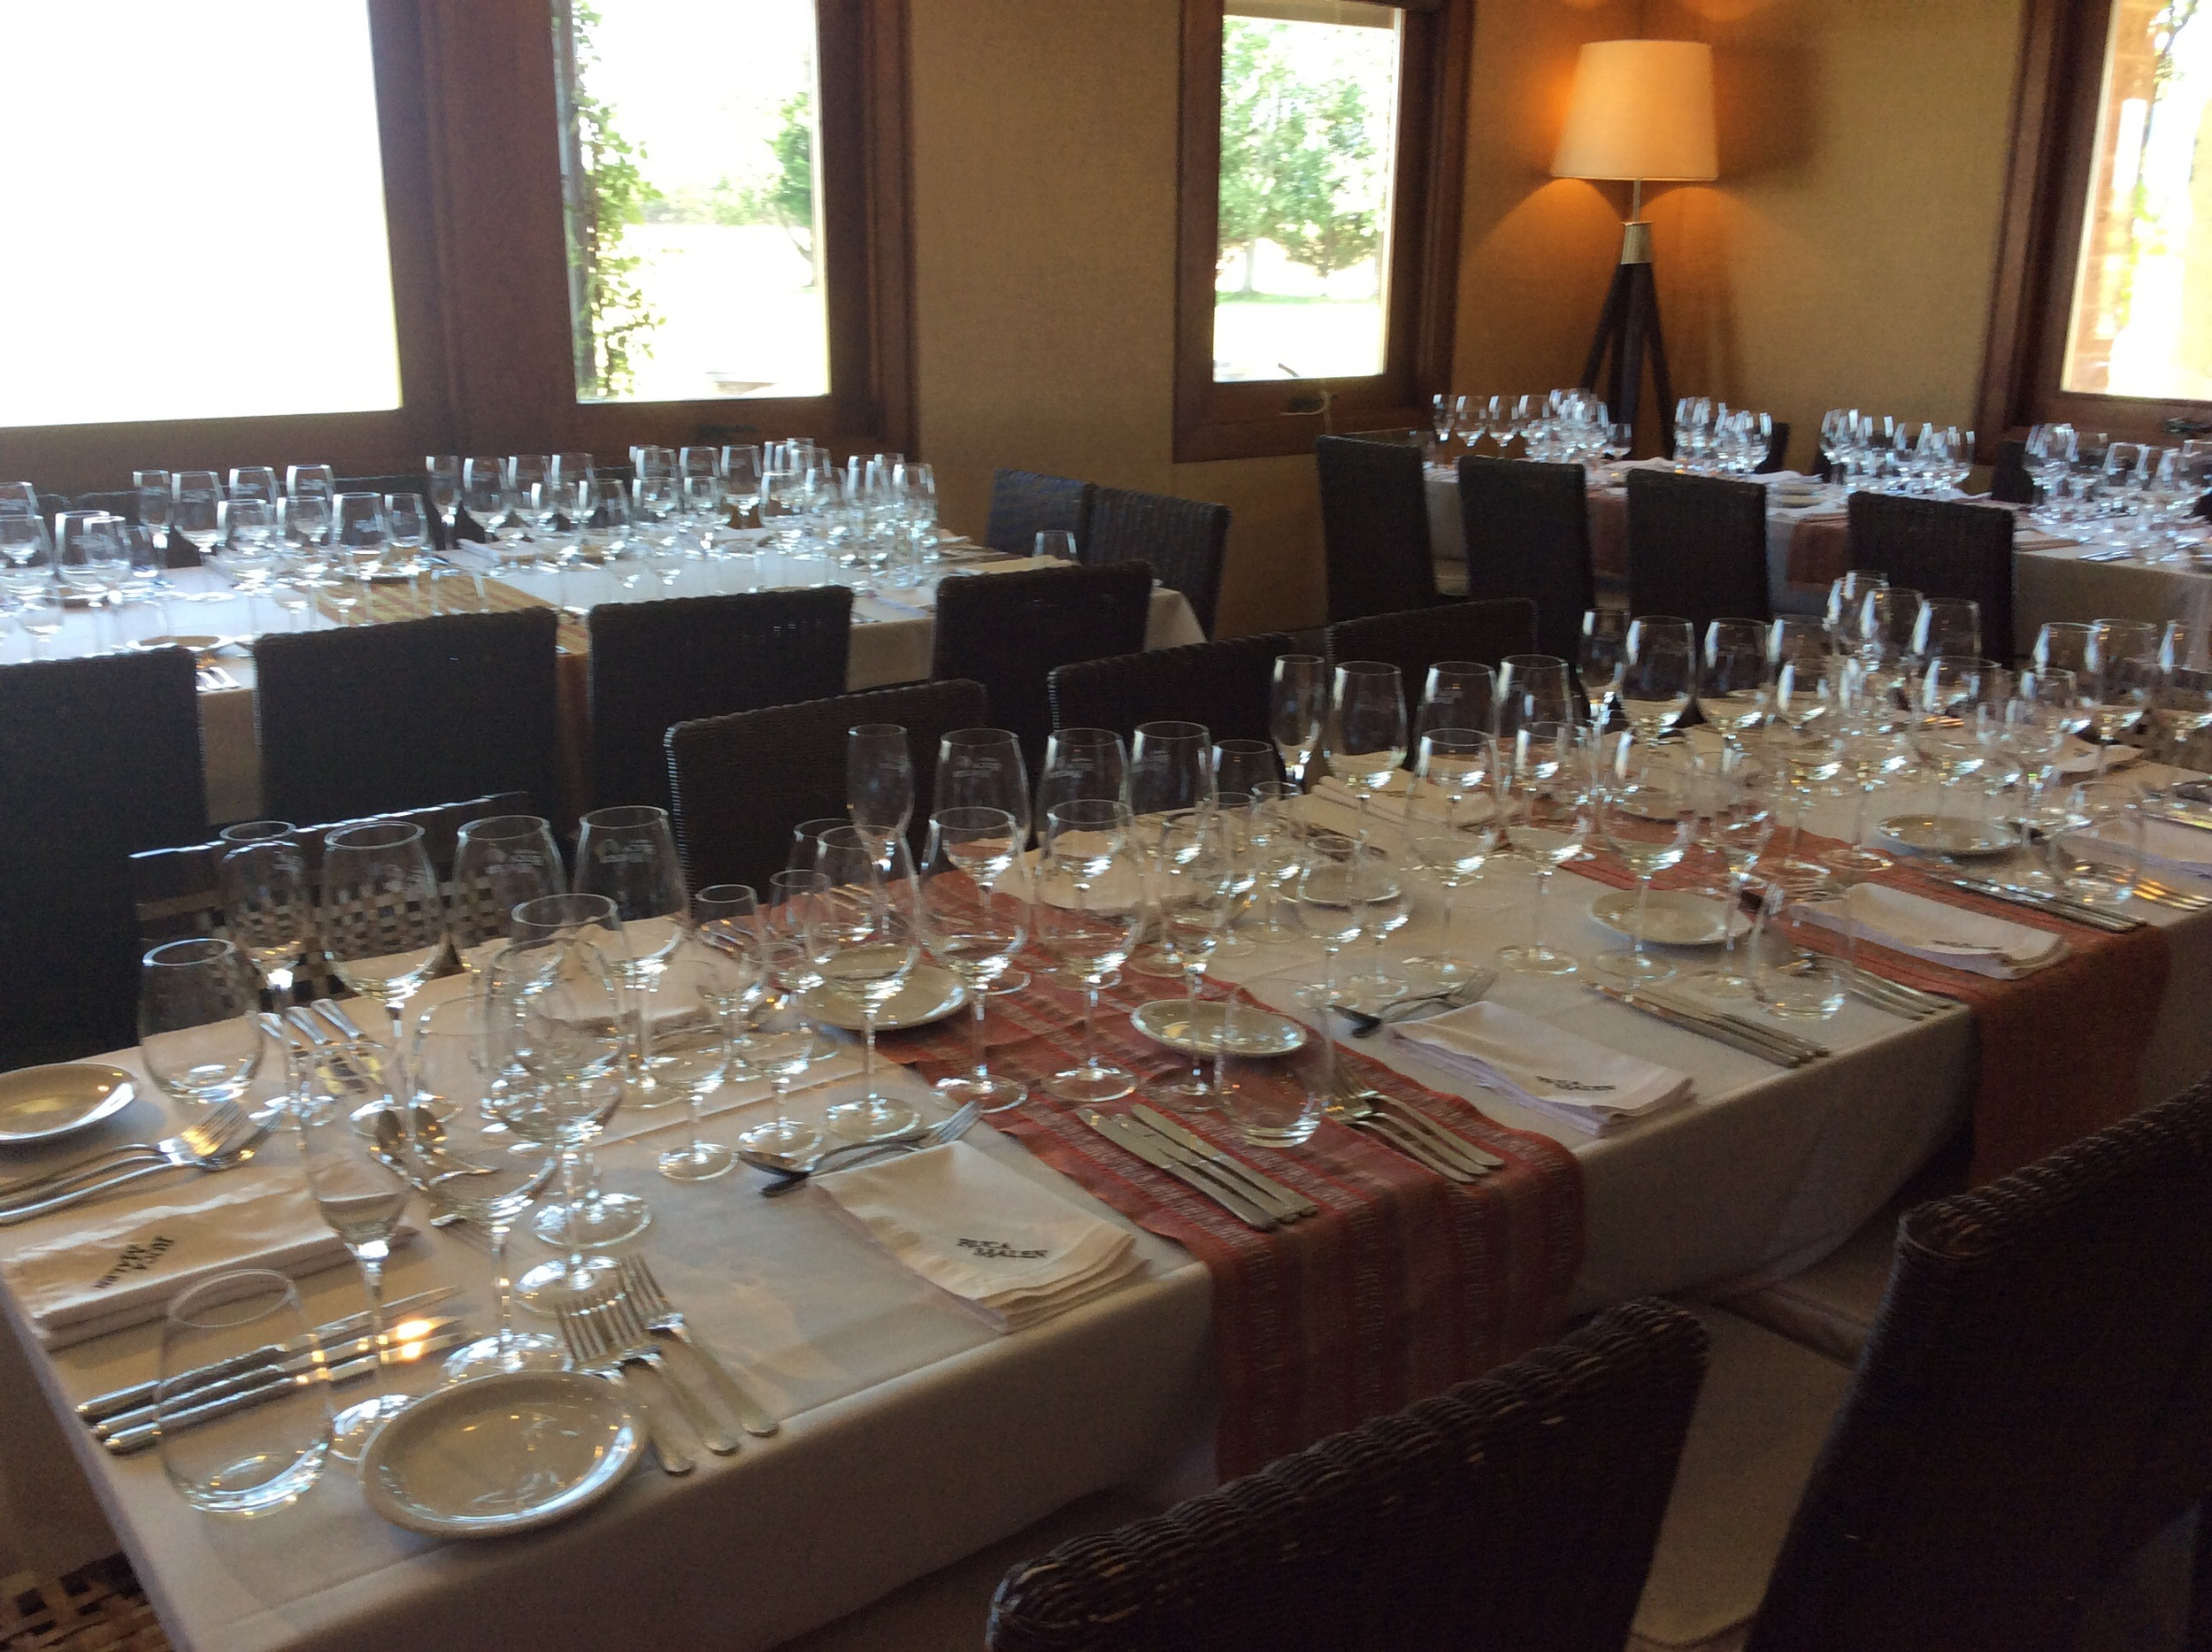 Just a few glasses for a large lunch group arriving soon